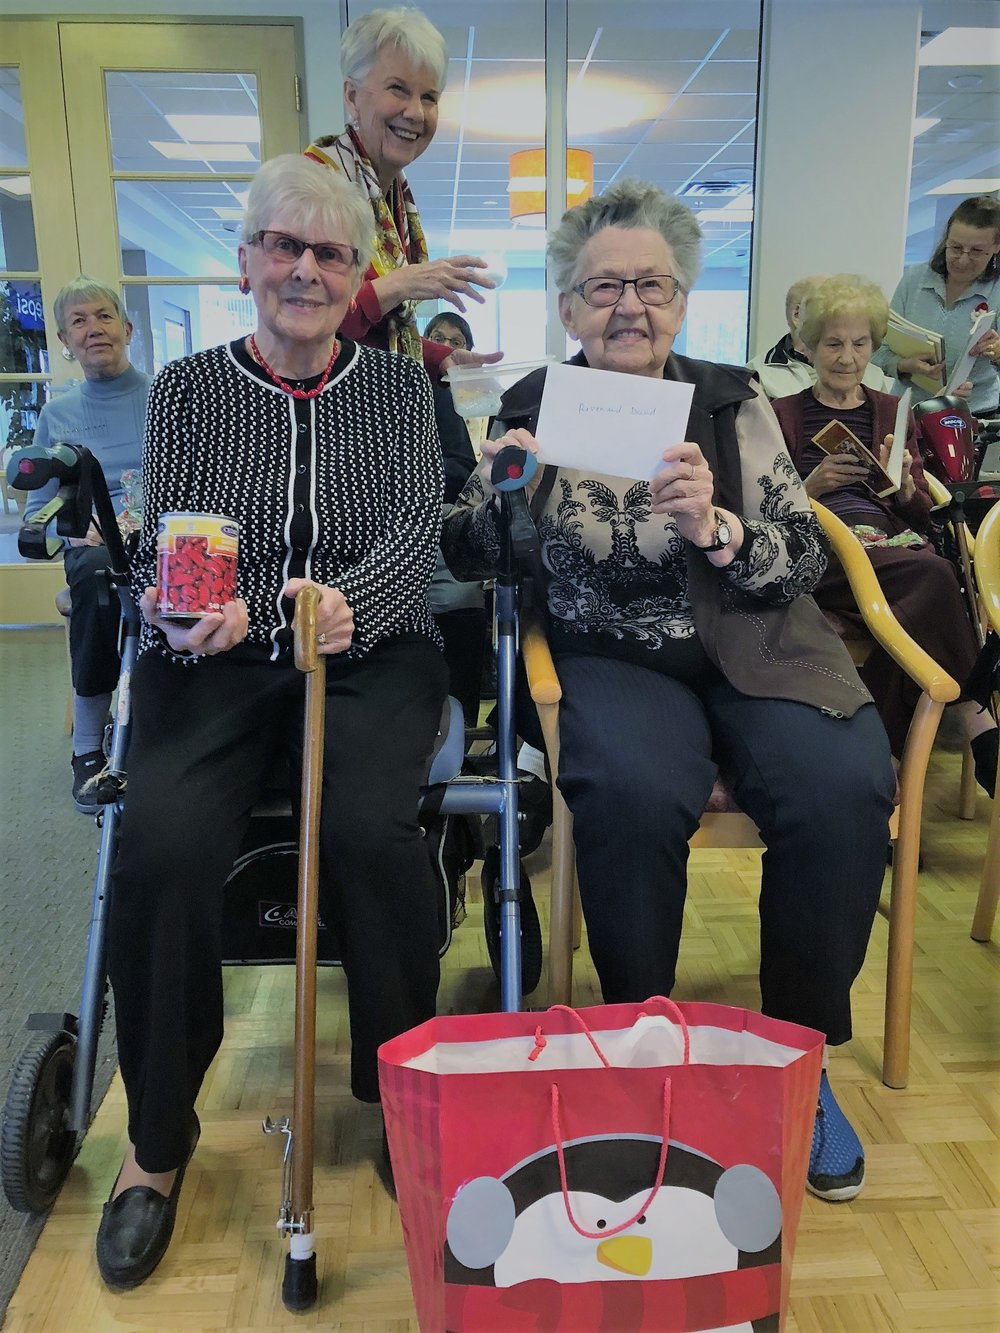 Eileen and Yvette from Les Floralies, LaSalle gave monies and canned goods for families in need at Christmas on behalf of the residents.